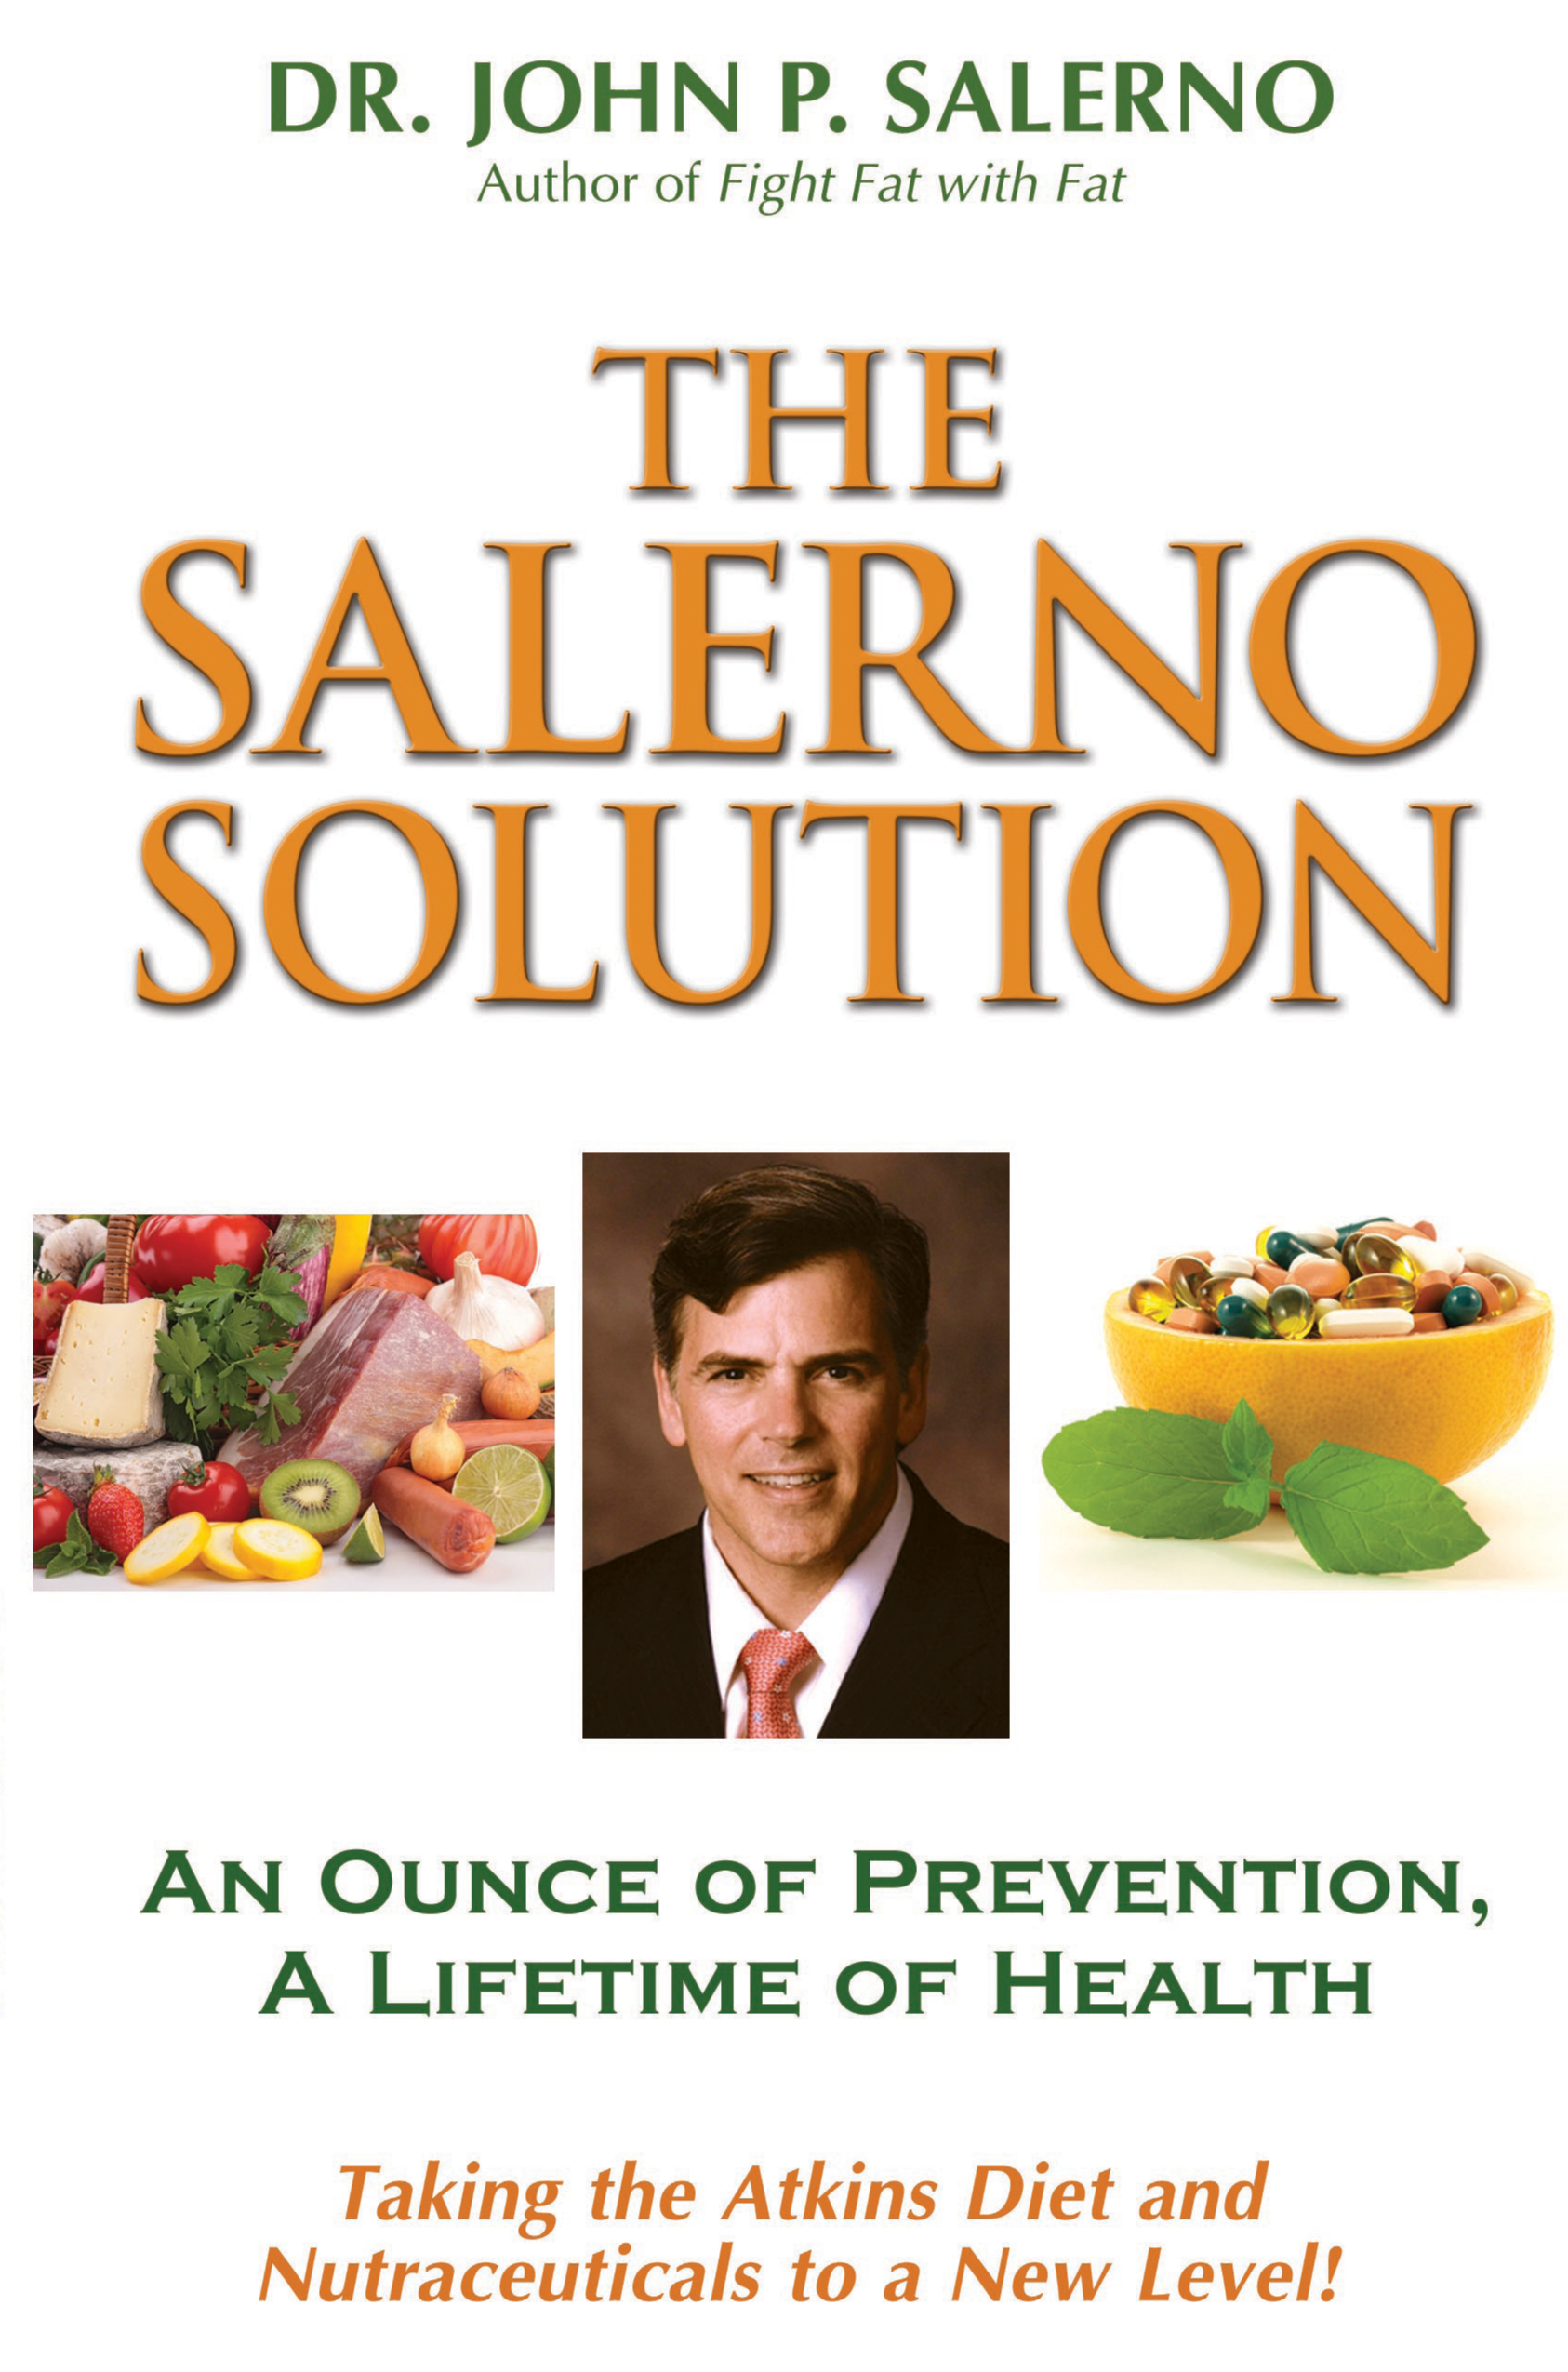 The Salerno Solution by Dr. John Salerno